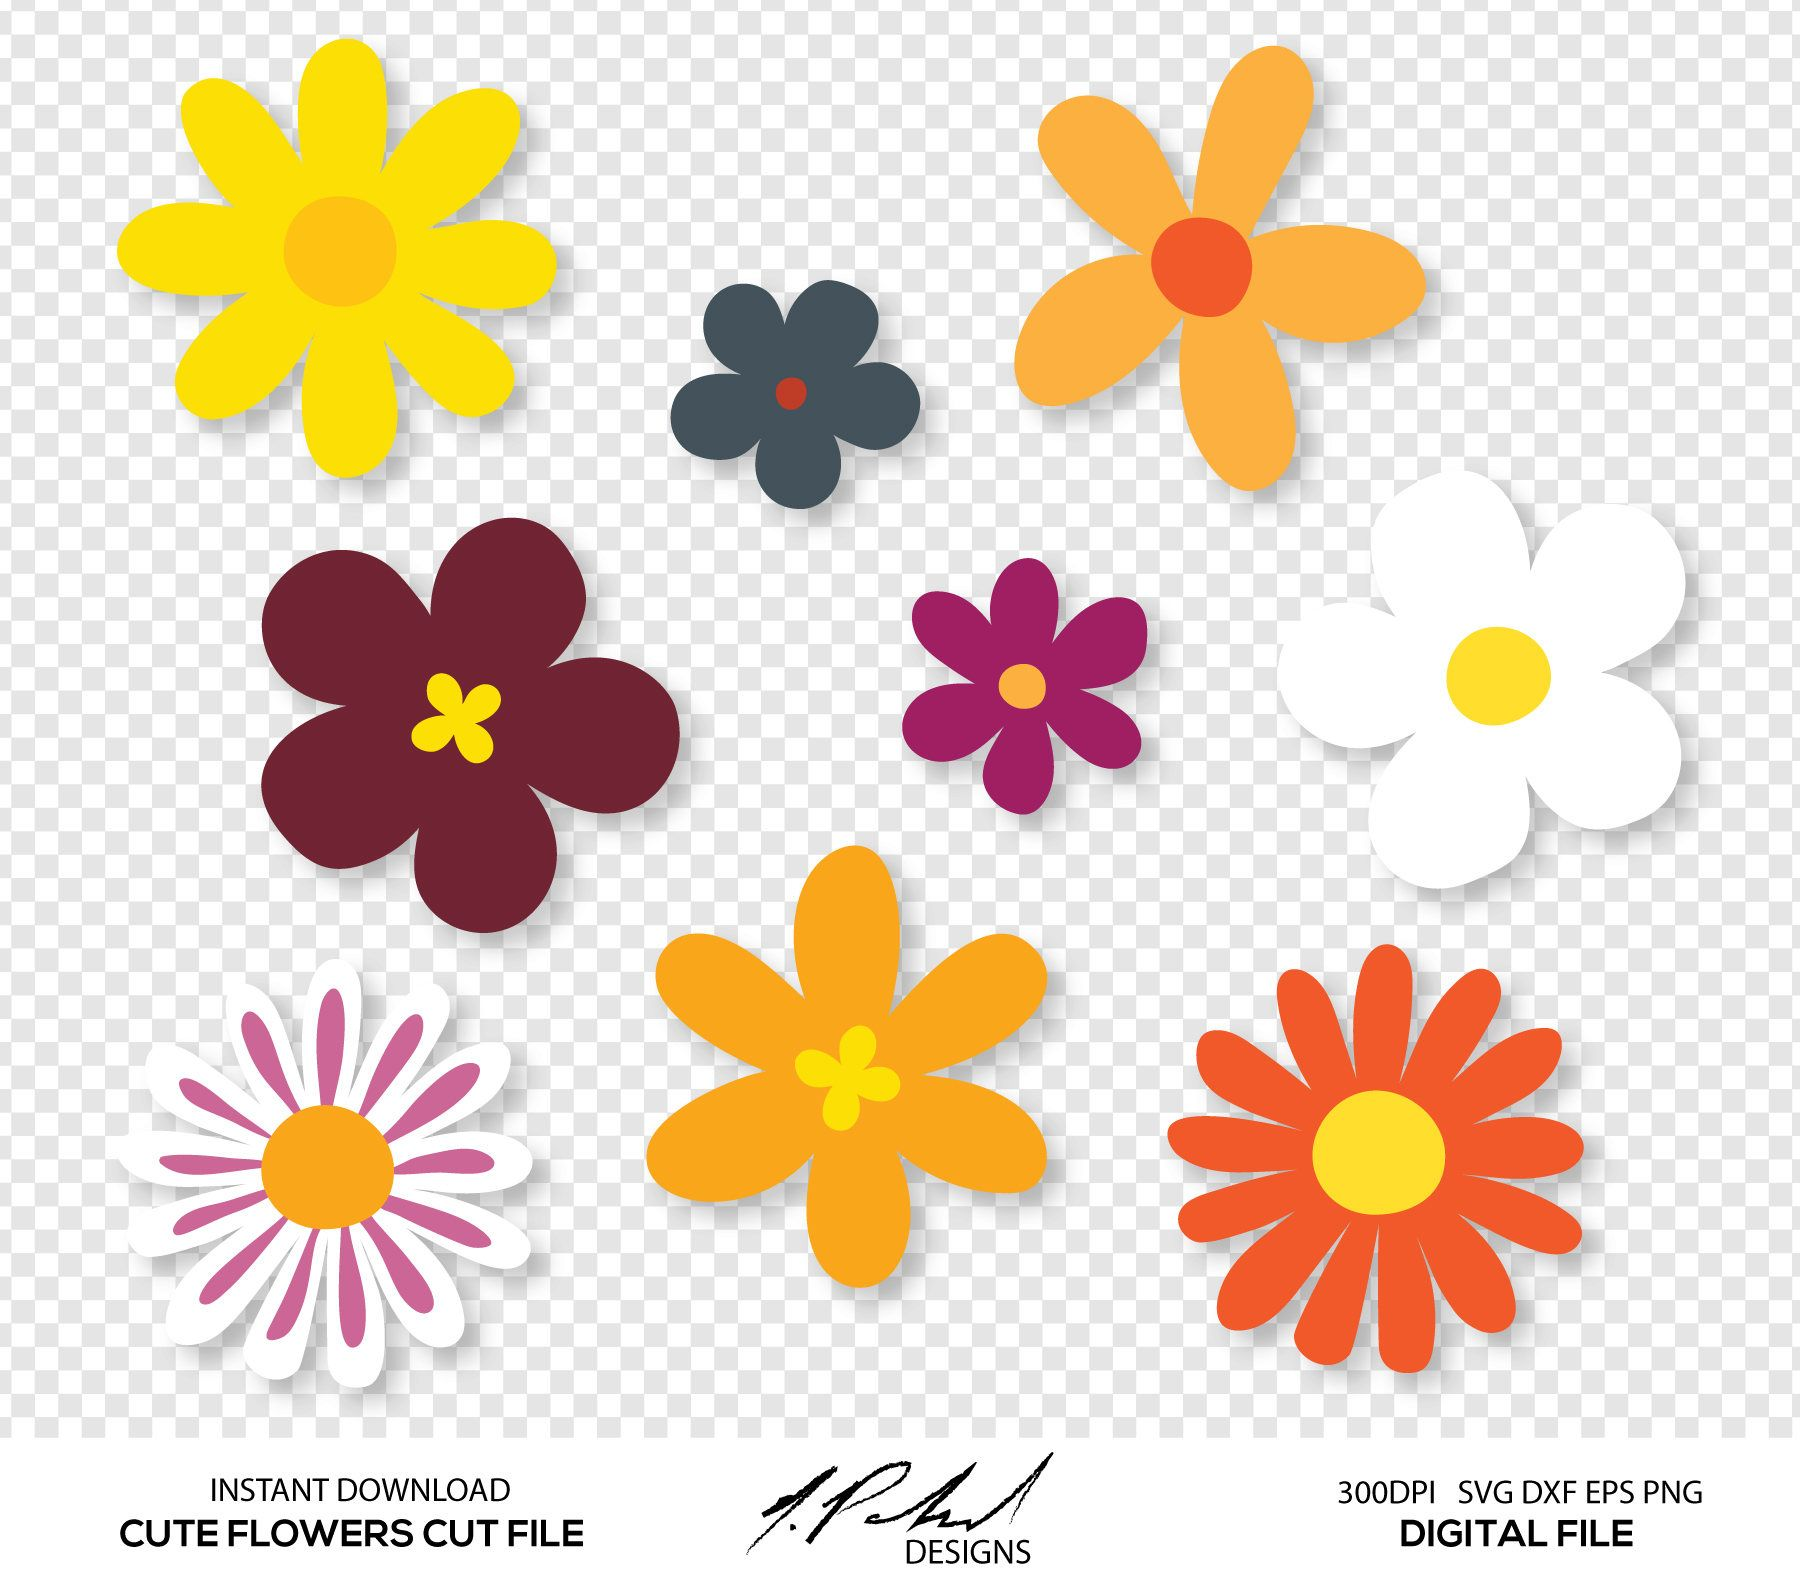 Cute clipart flowers clip art stock Cute Flowers Digital Cut Files - Digital Files - Flower SVG - Flower ... clip art stock